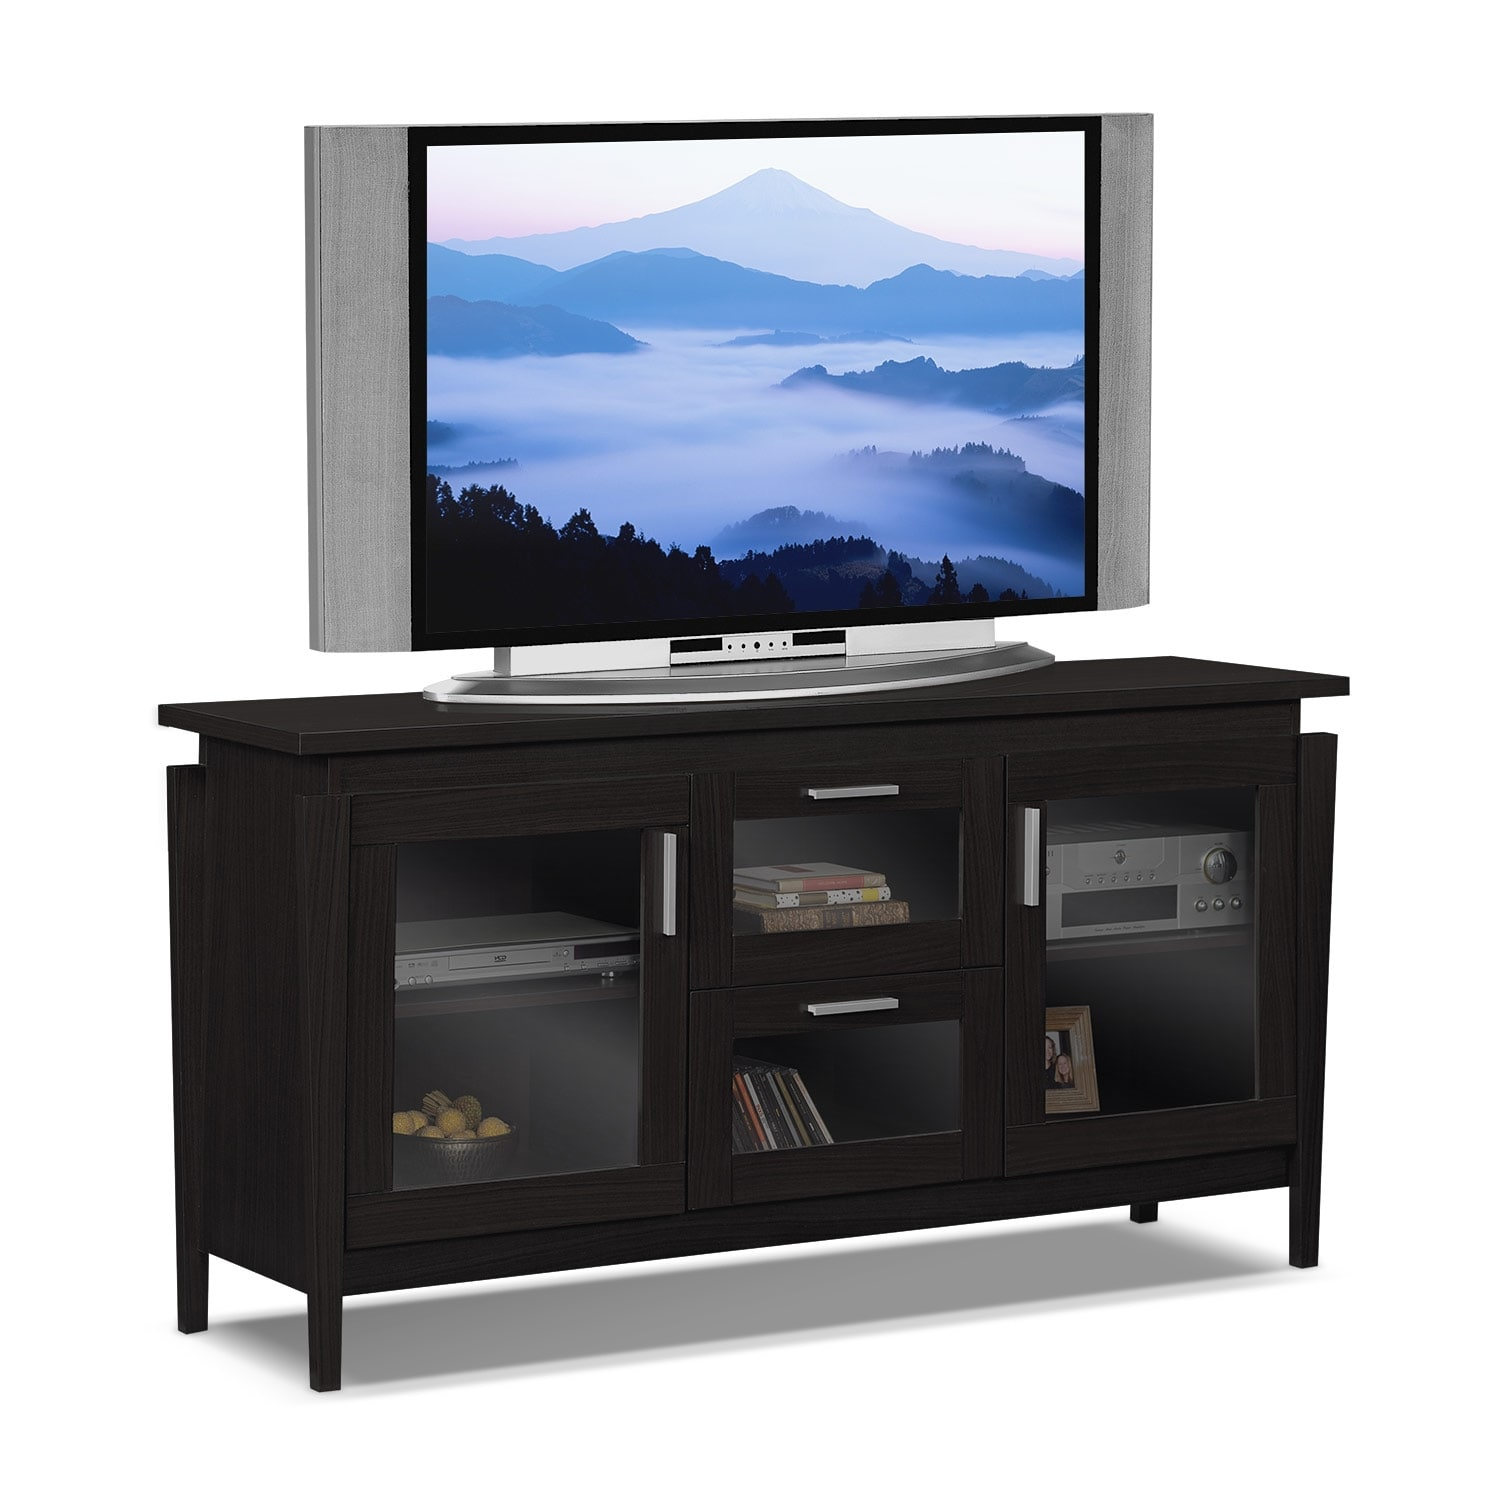 "[Saber 60"" TV Stand]"